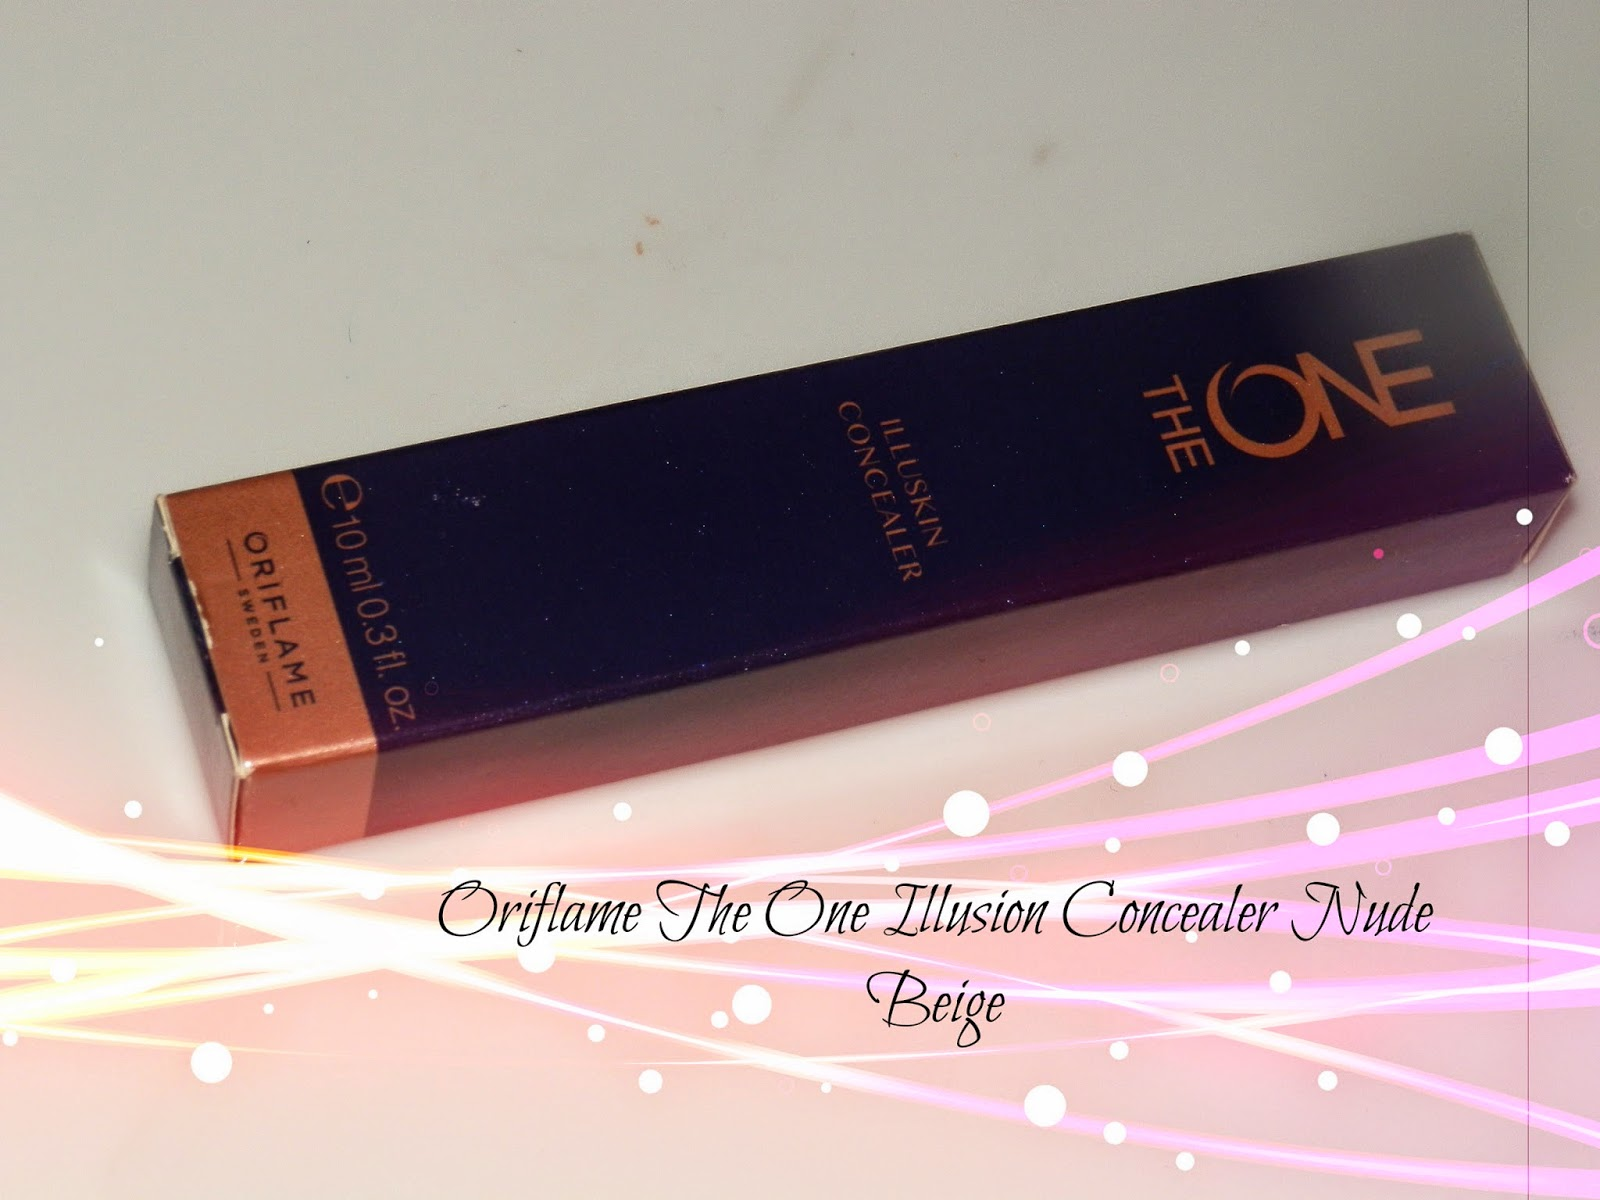 Oriflame The One Illusion Concealer Nude Beige Swatches